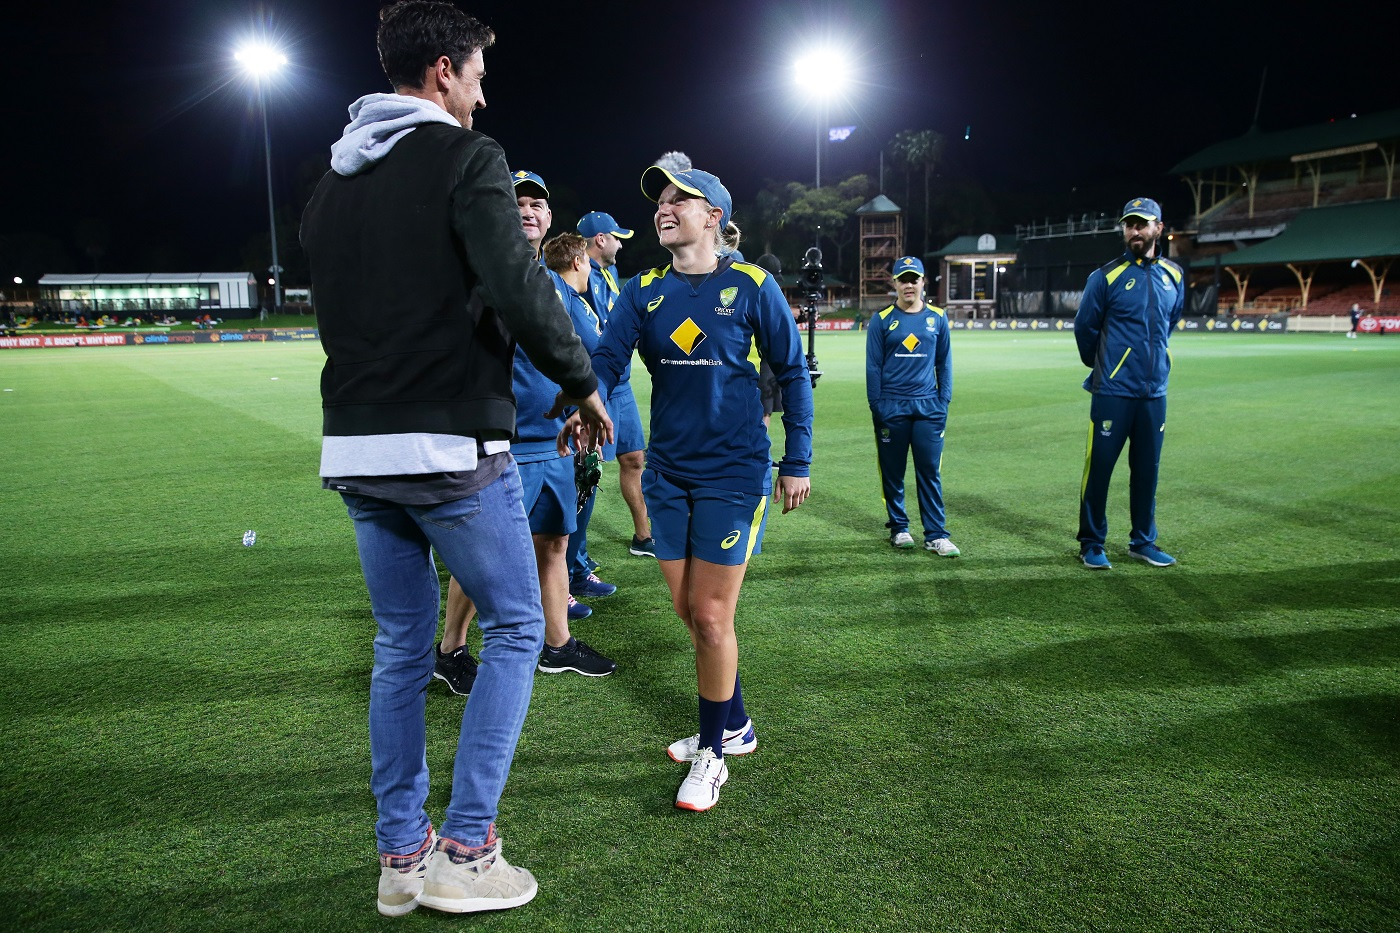 The Stealys: Mitchell Starc is a familiar face at Healy's matches whenever their schedules line up